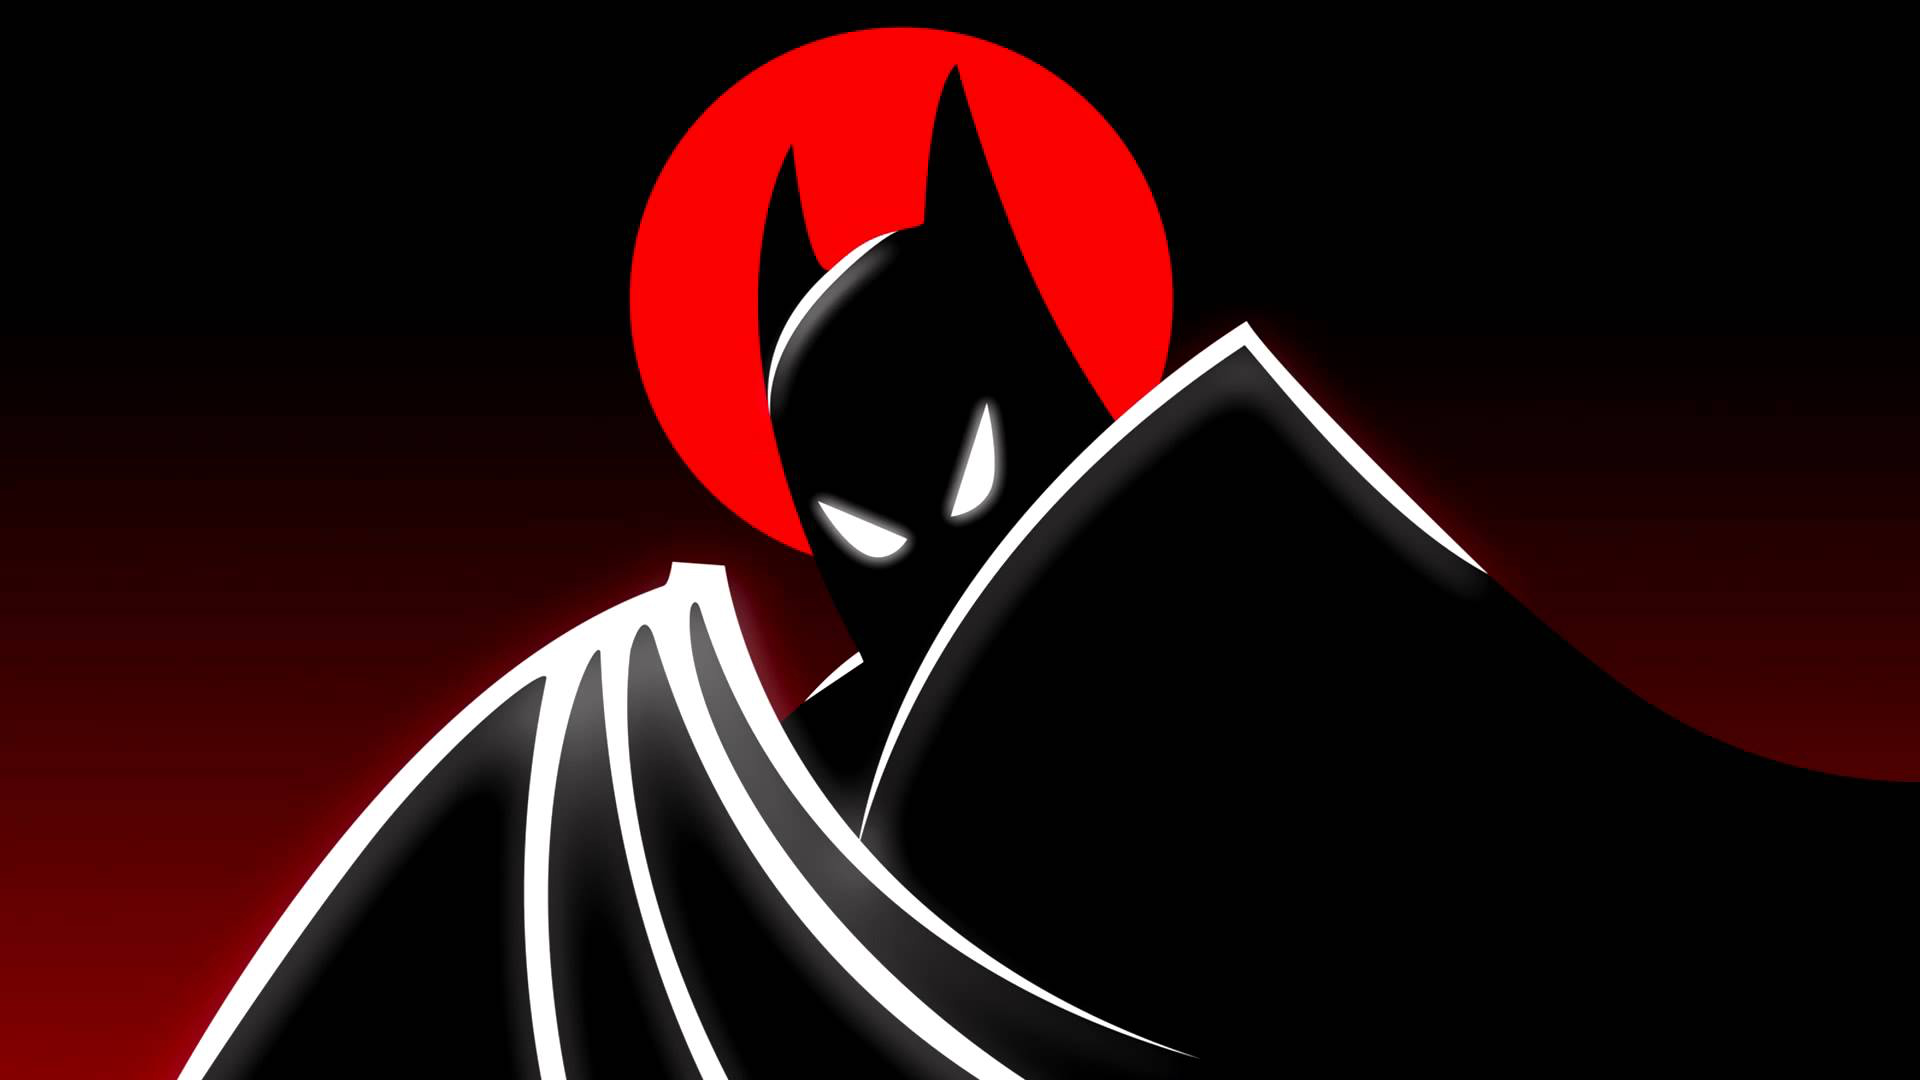 Batman the Animated Series  is romantic, thrilling, dramatic and action packed.In my opinion it is the pinnacle of superhero stories in the medium of film and TV perfectly capturing  Batman  and the world he inhabits.  Bruce Timm's  simple but bold character designs seamlessly blend with its modern meets retro aesthetics, giving  Batman the Animated Series  a sense of timelessness - Something we hope to achieve with SUPERZEROES.